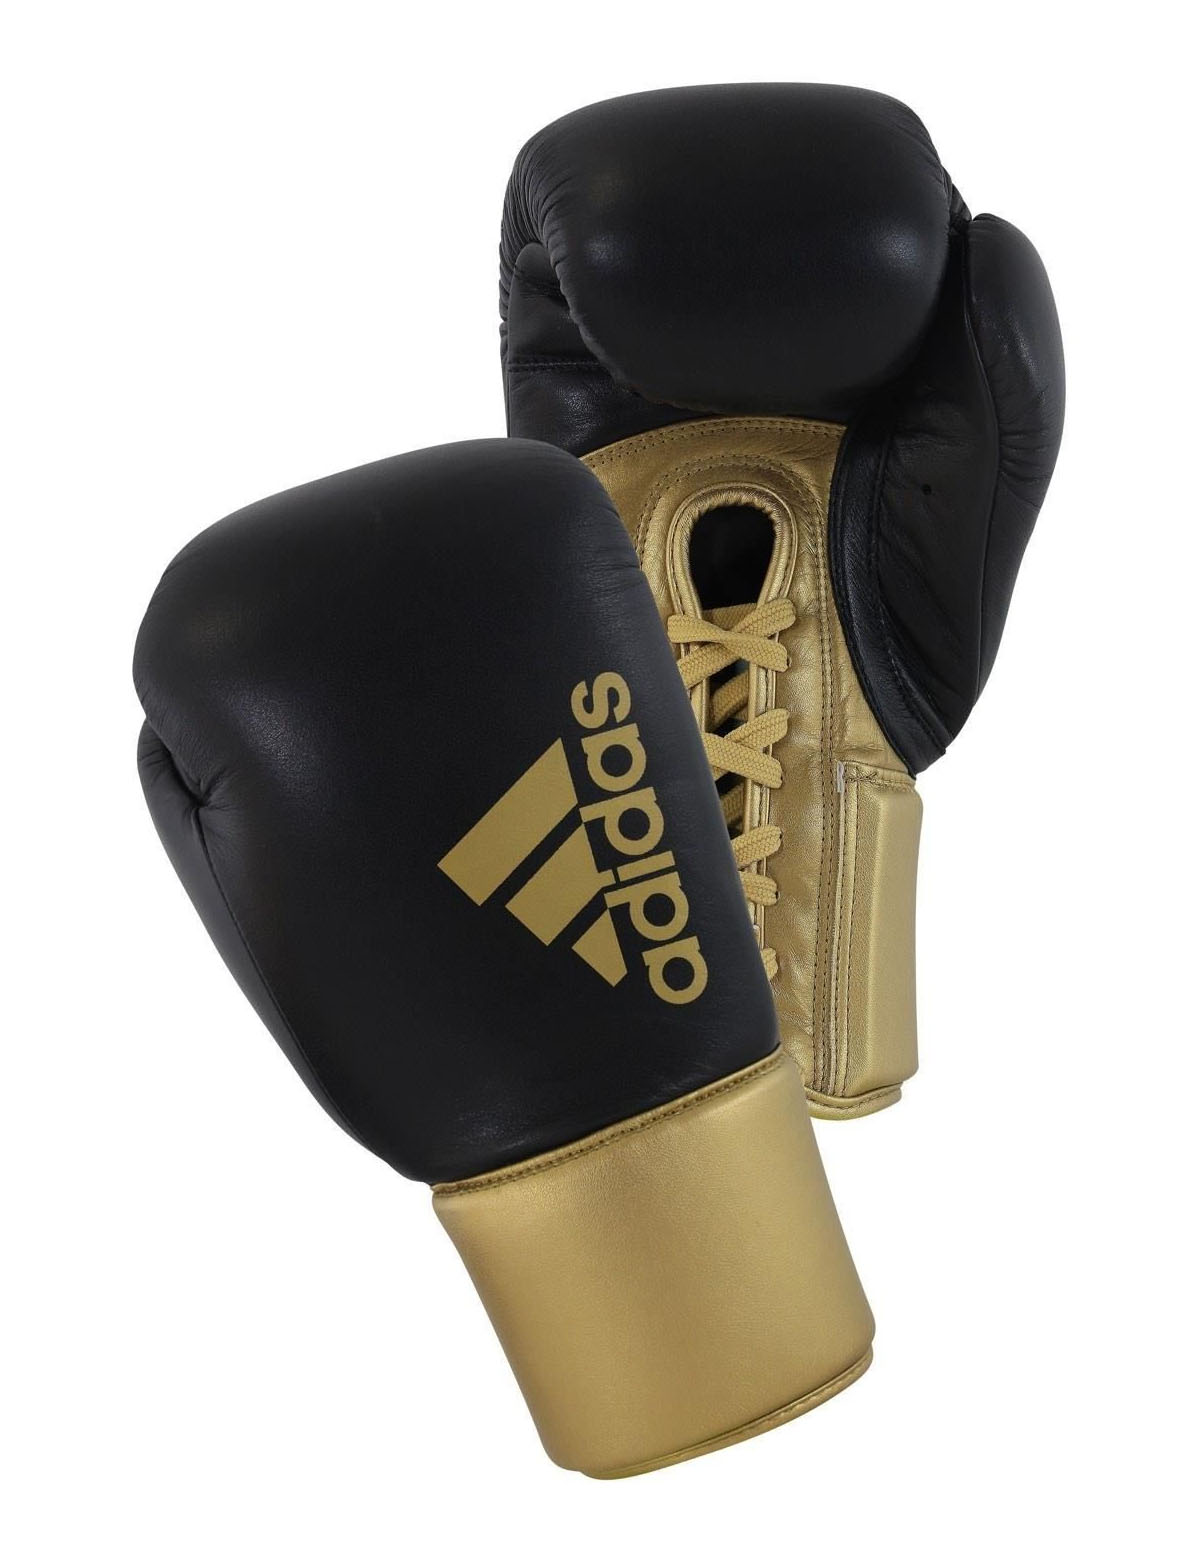 Adidas Hybrid 400 Boxing Gloves Black Gold